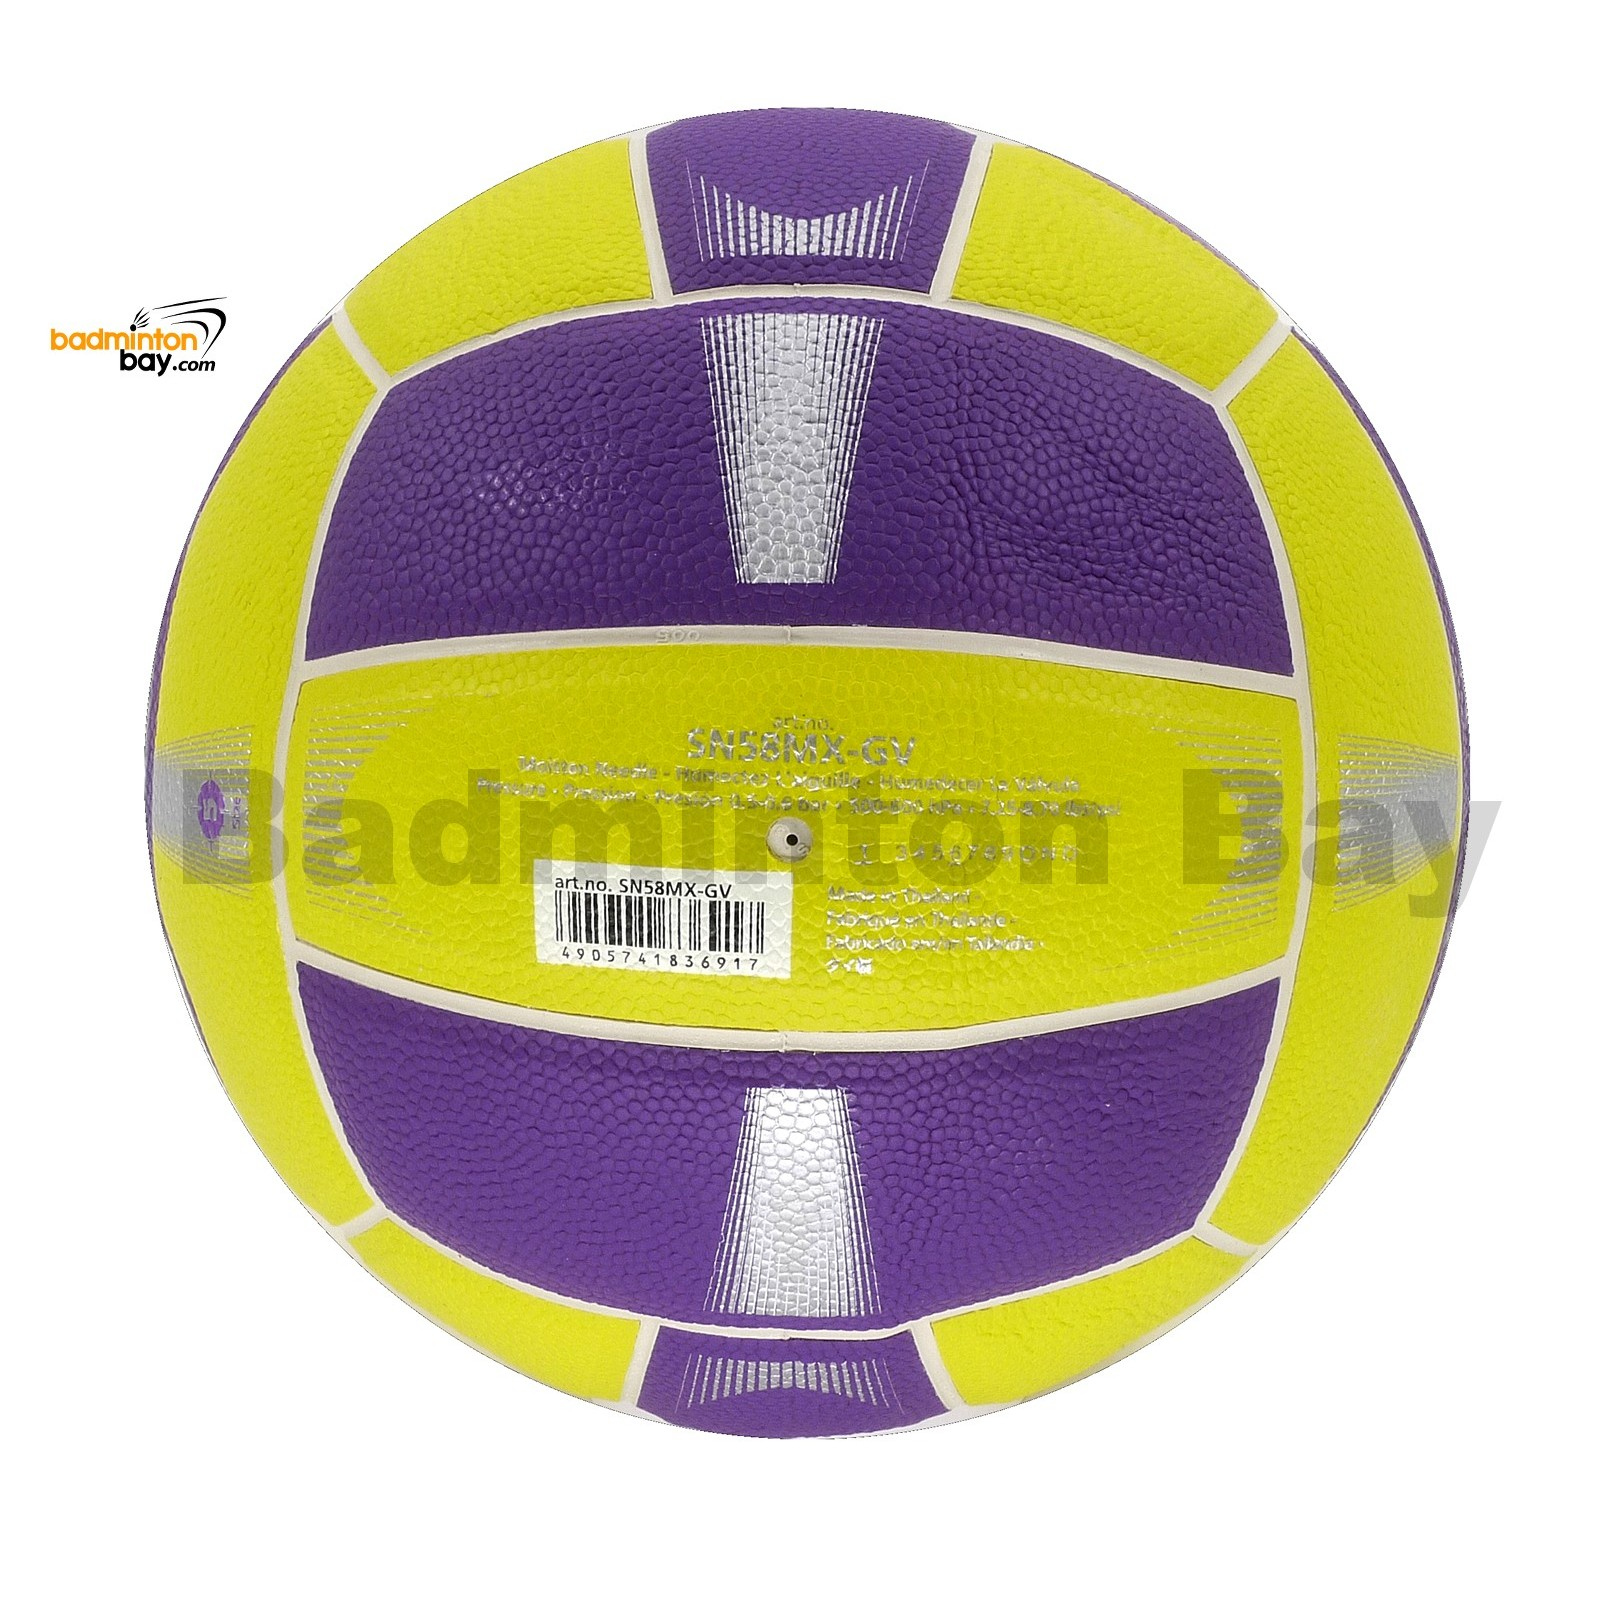 Molten SN58MX Netball Yellow Purple Ball Synthetic Leather